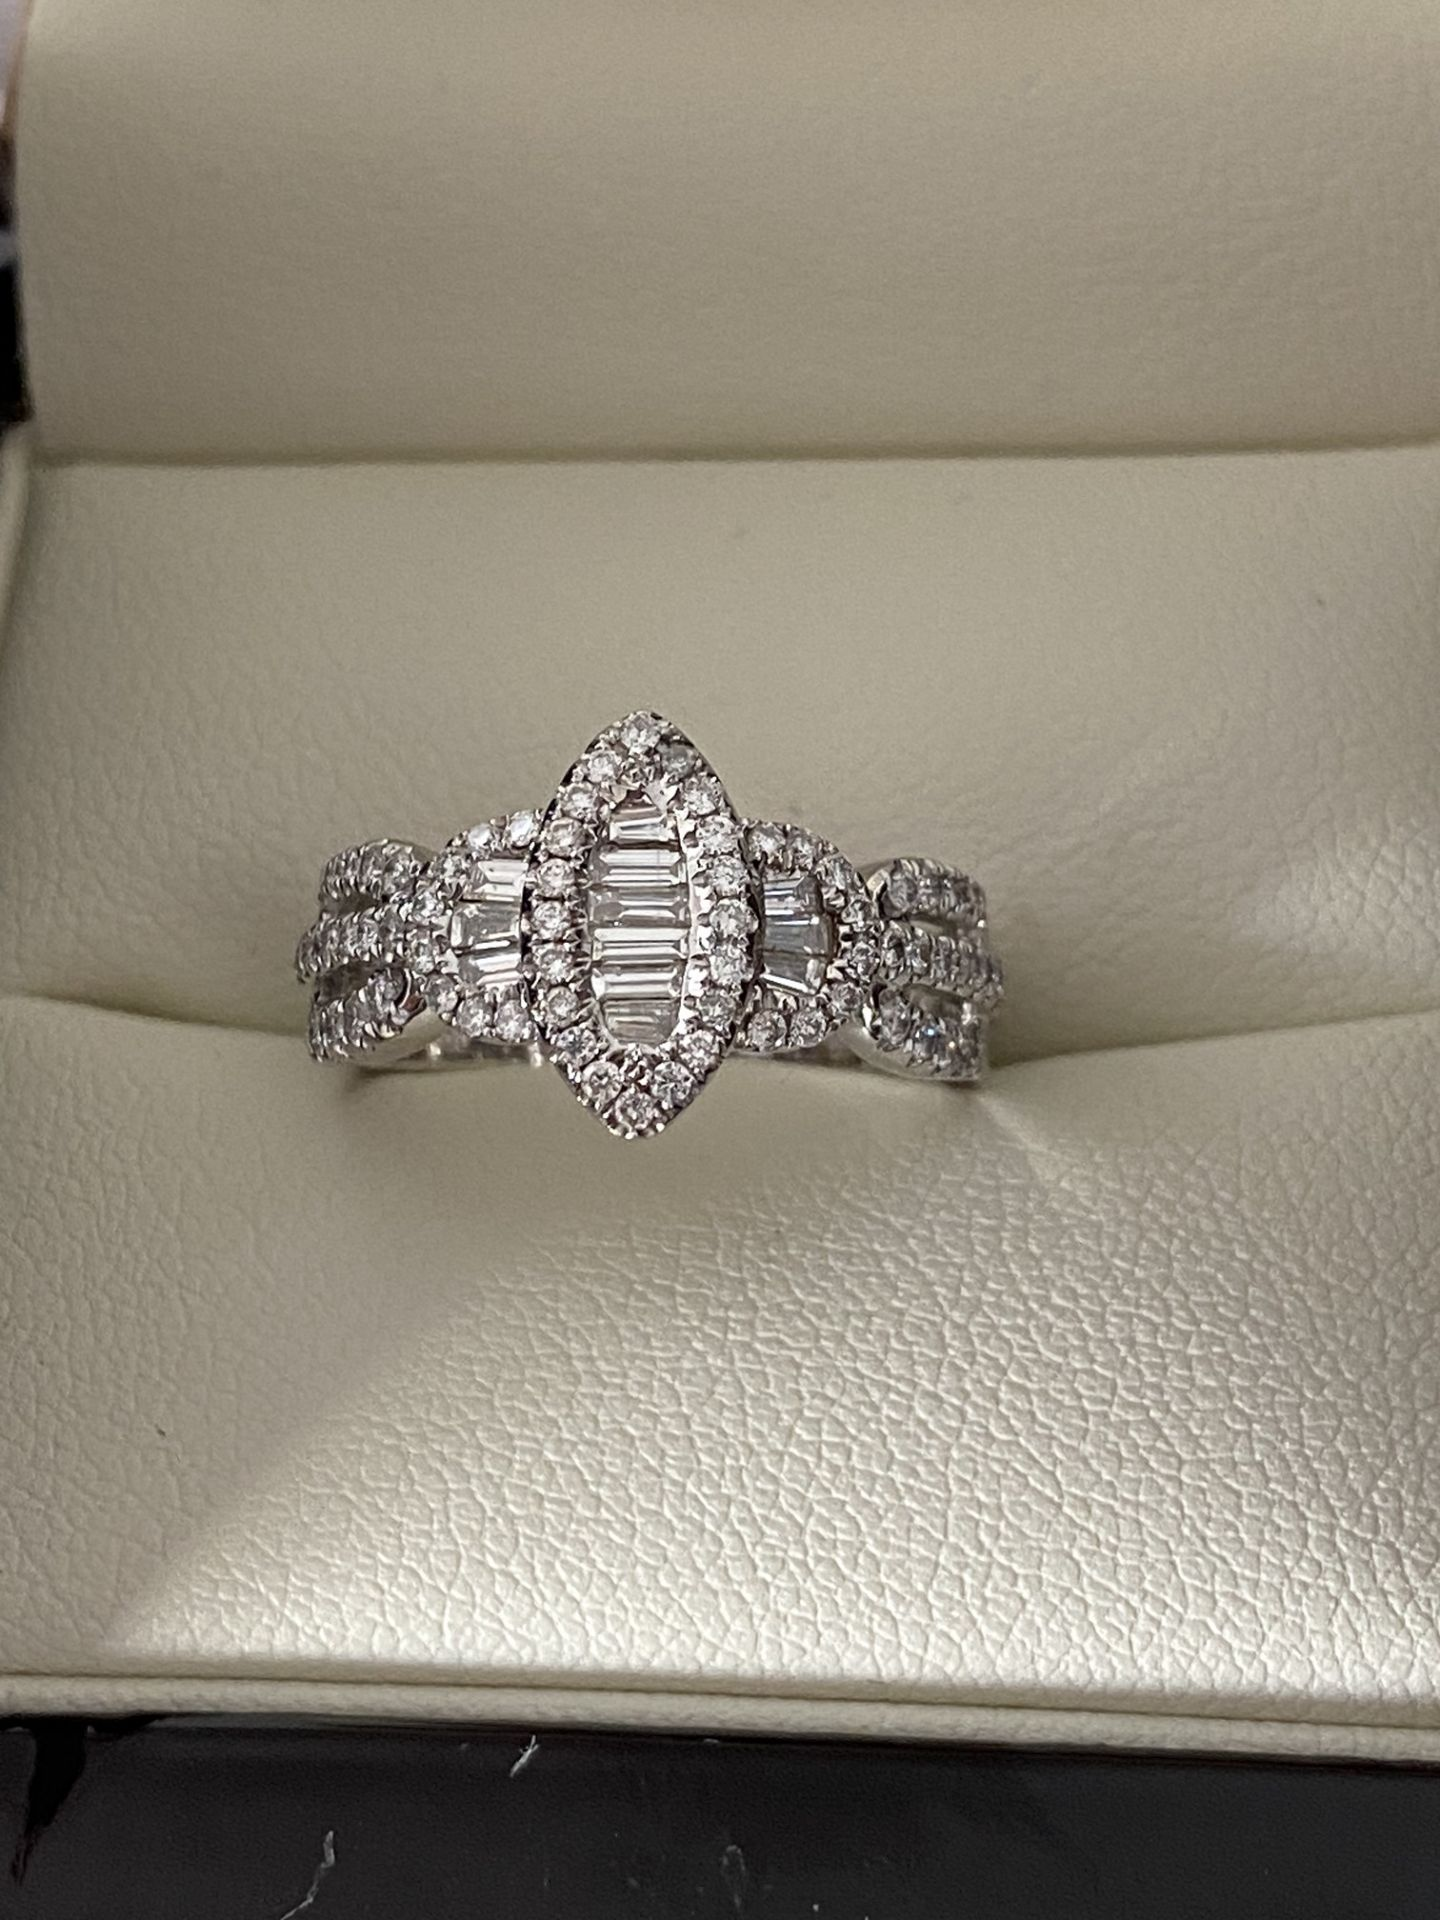 0.69ct DIAMOND MARQUISE SHAPED RING SET IN WHITE GOLD - Image 4 of 6